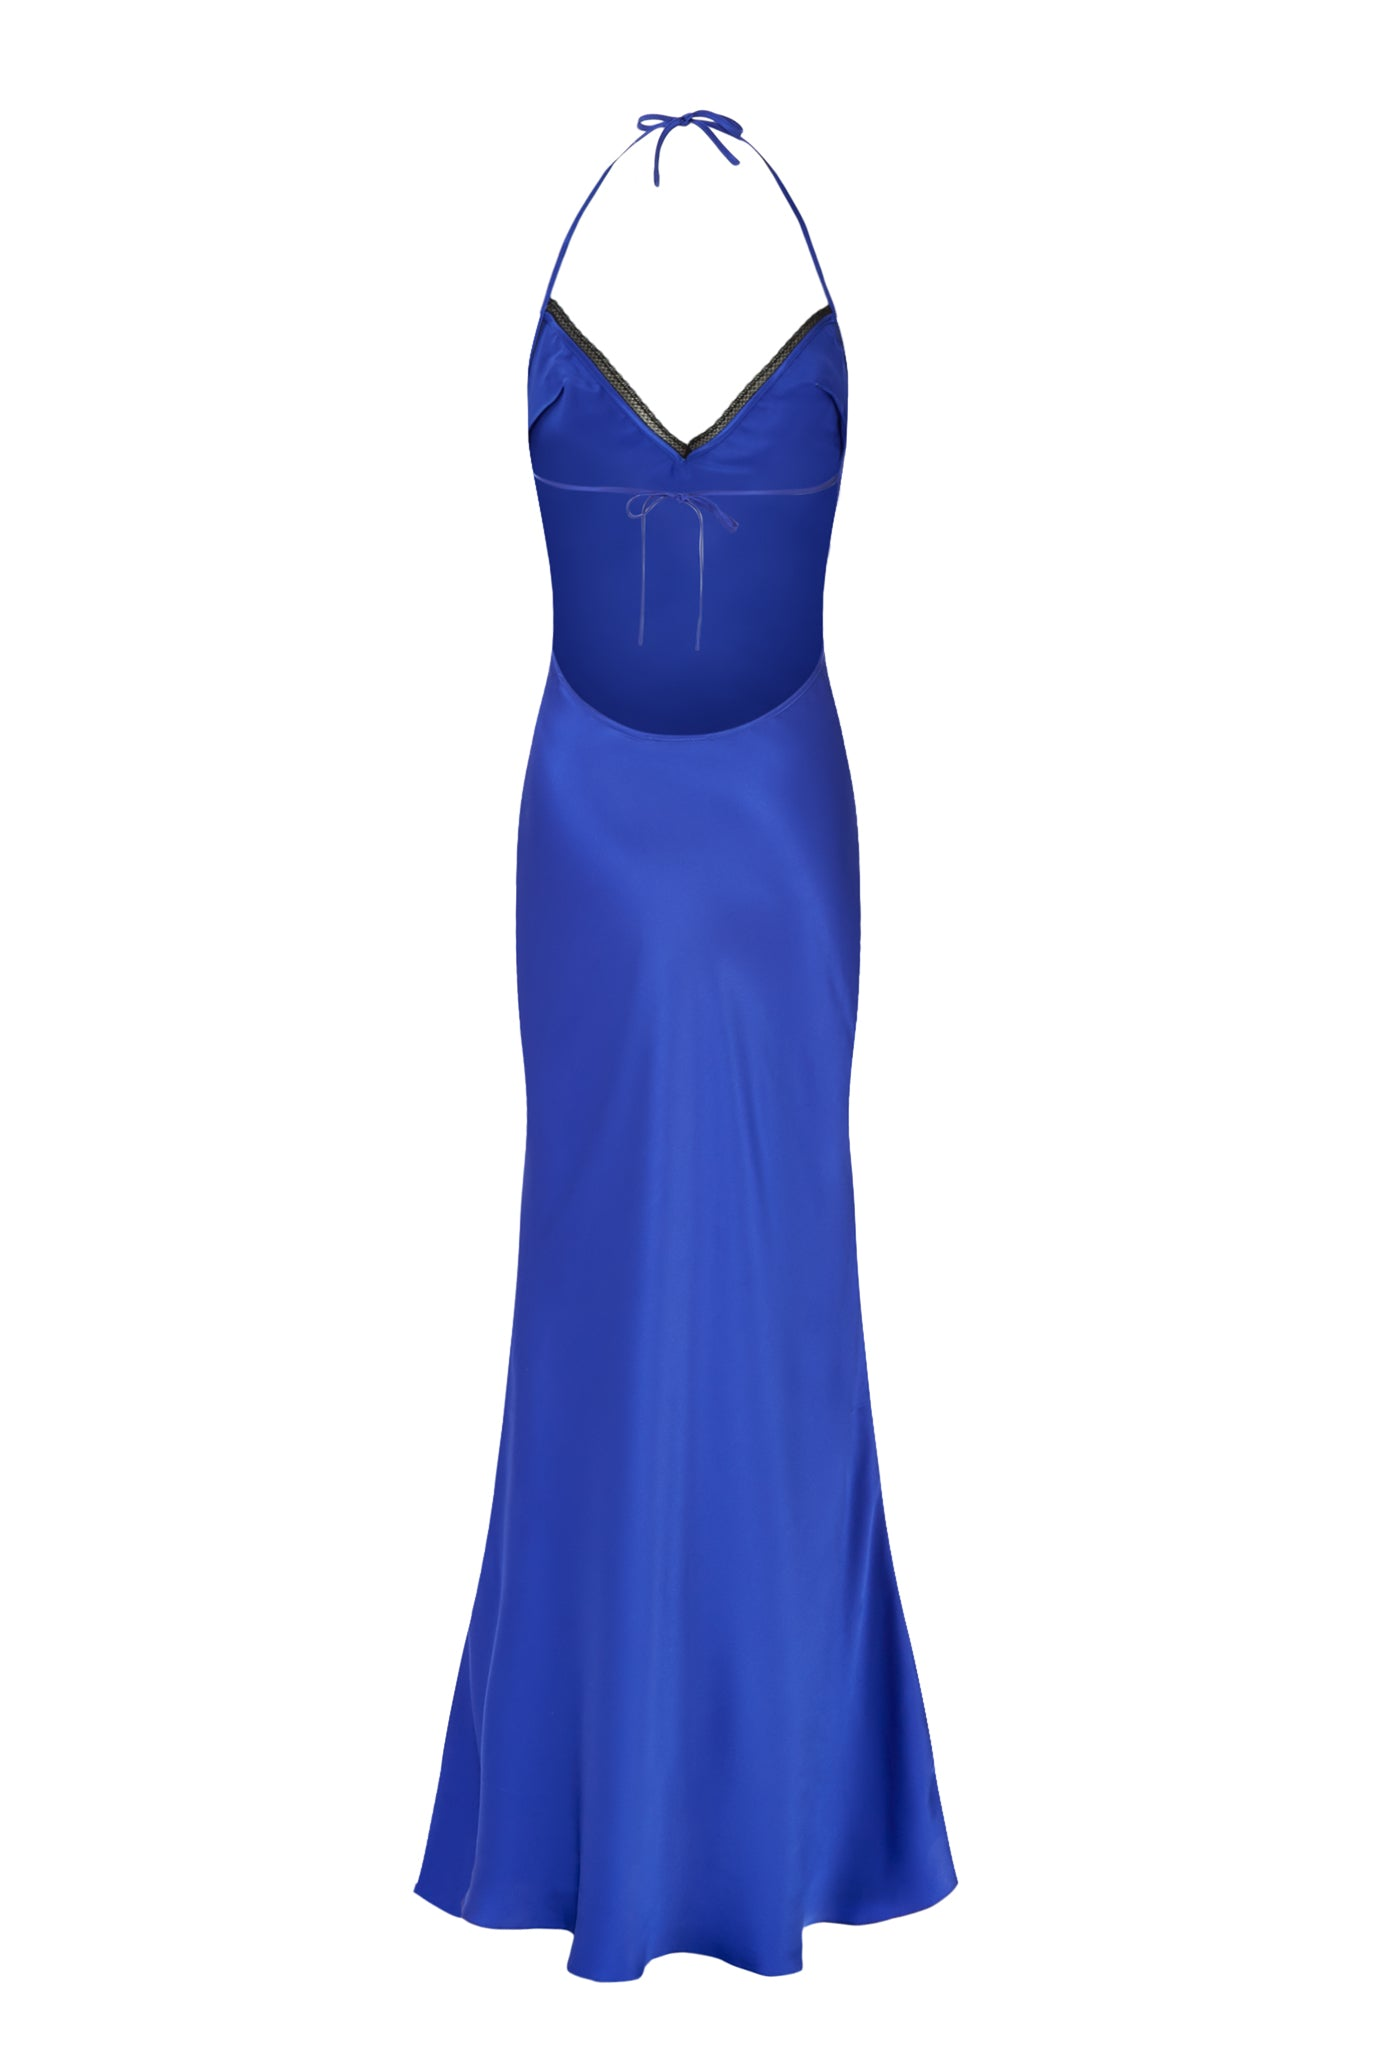 The slip dress sapphire silk